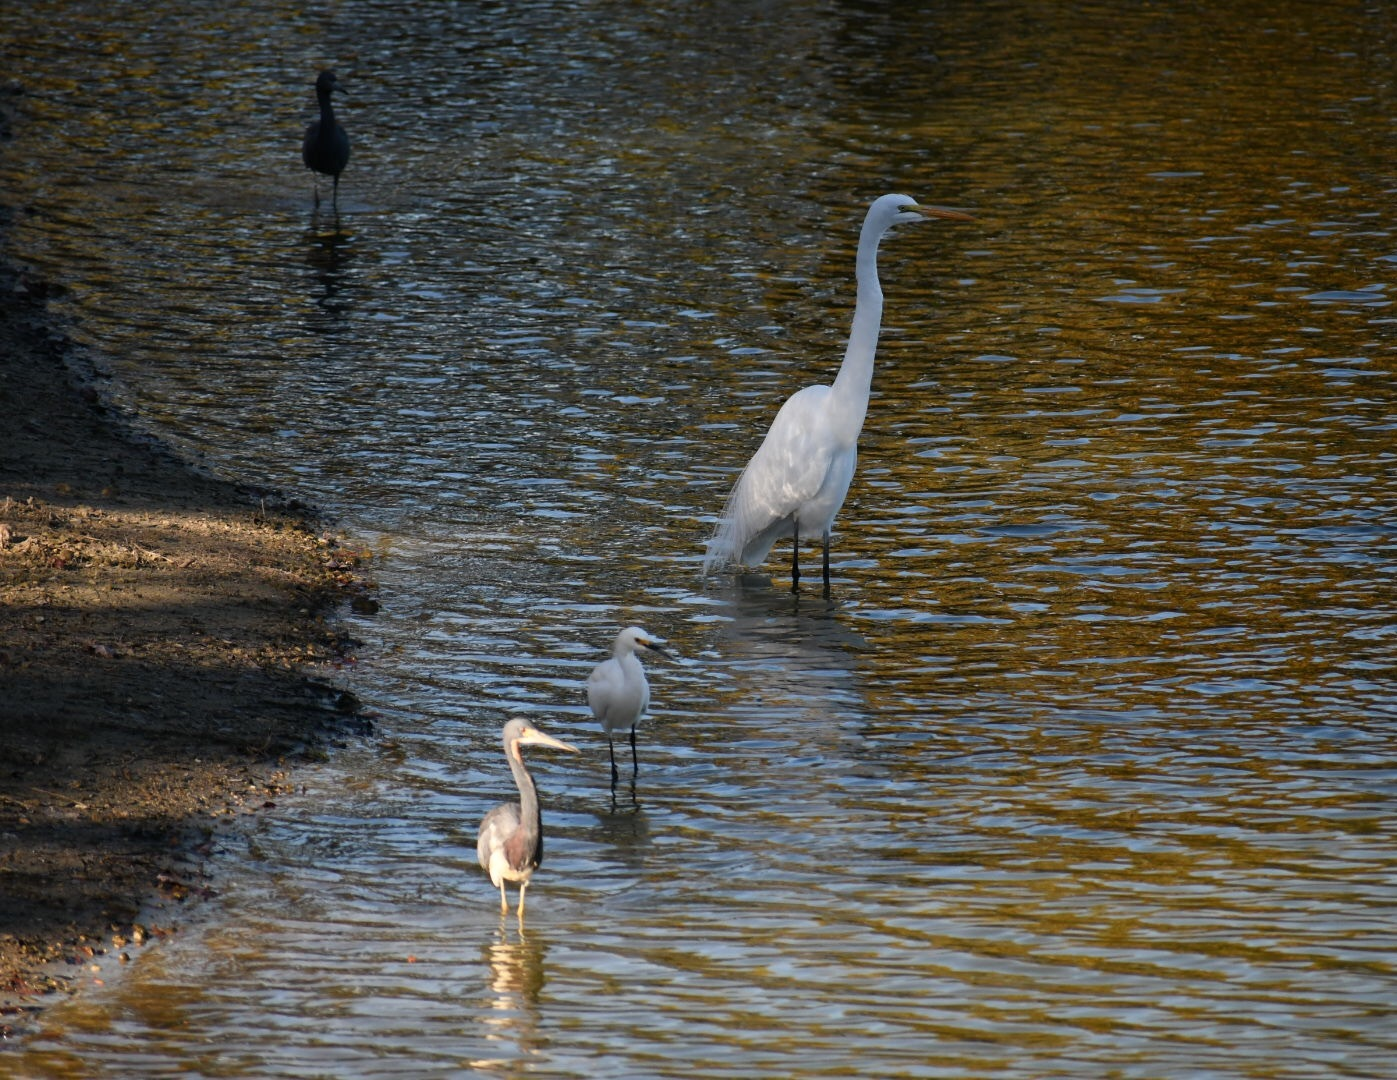 Afternoon at the Lake by Deanna Dahl Wefel